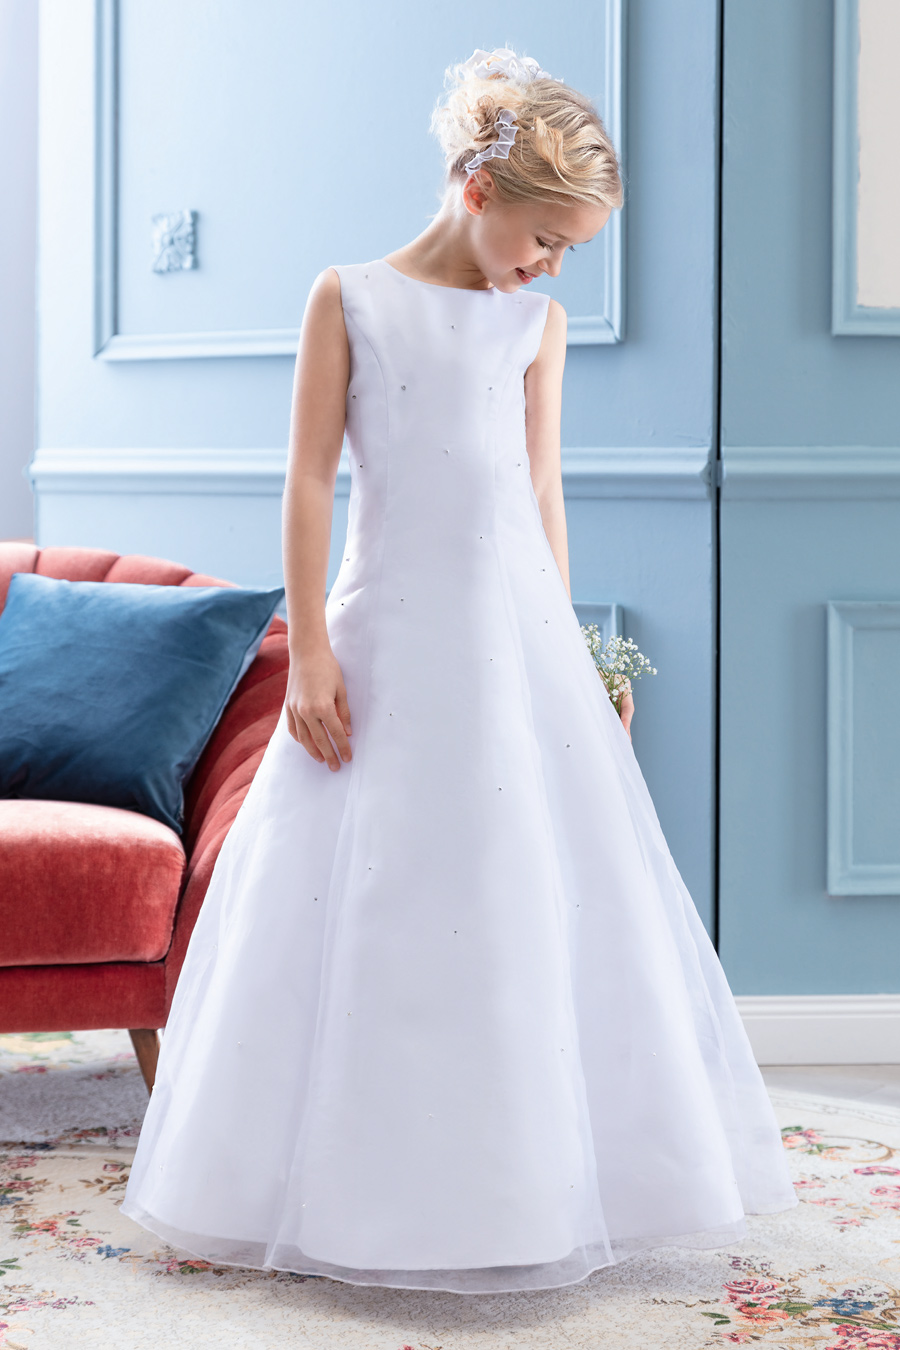 77712 DRESS Pure White